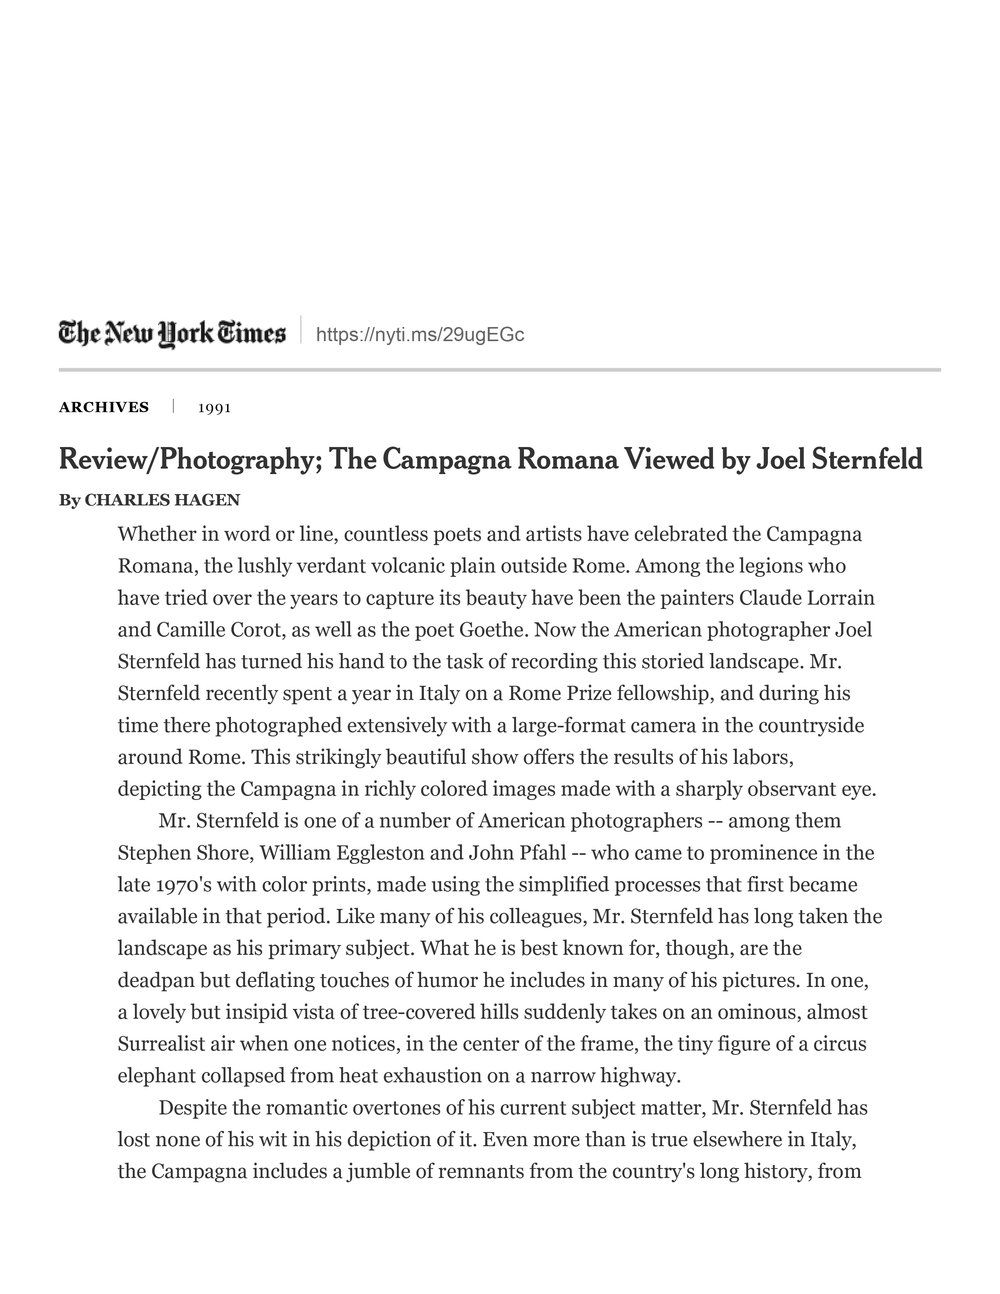 18-Review-Photography;-The-Campagna-Romana...by-Joel-Sternfeld---The-New-York-Times-1.jpg